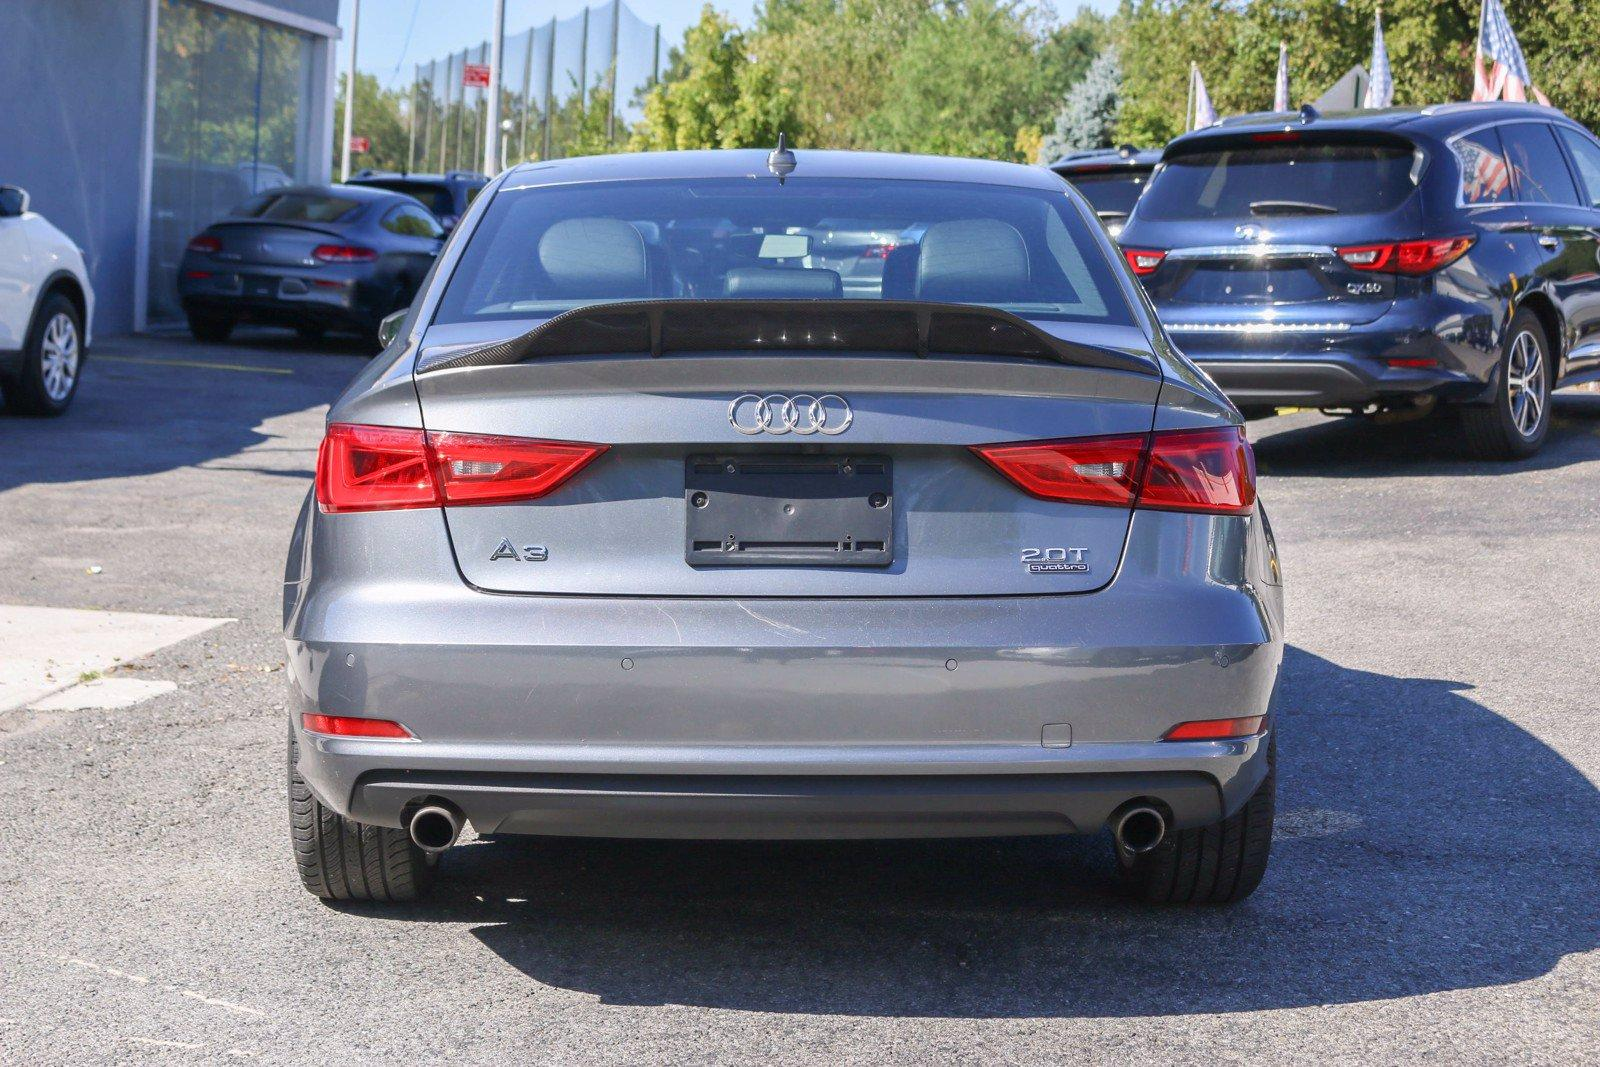 Used-2016-Audi-A3-20T-Premium-(CASH-ONLY)